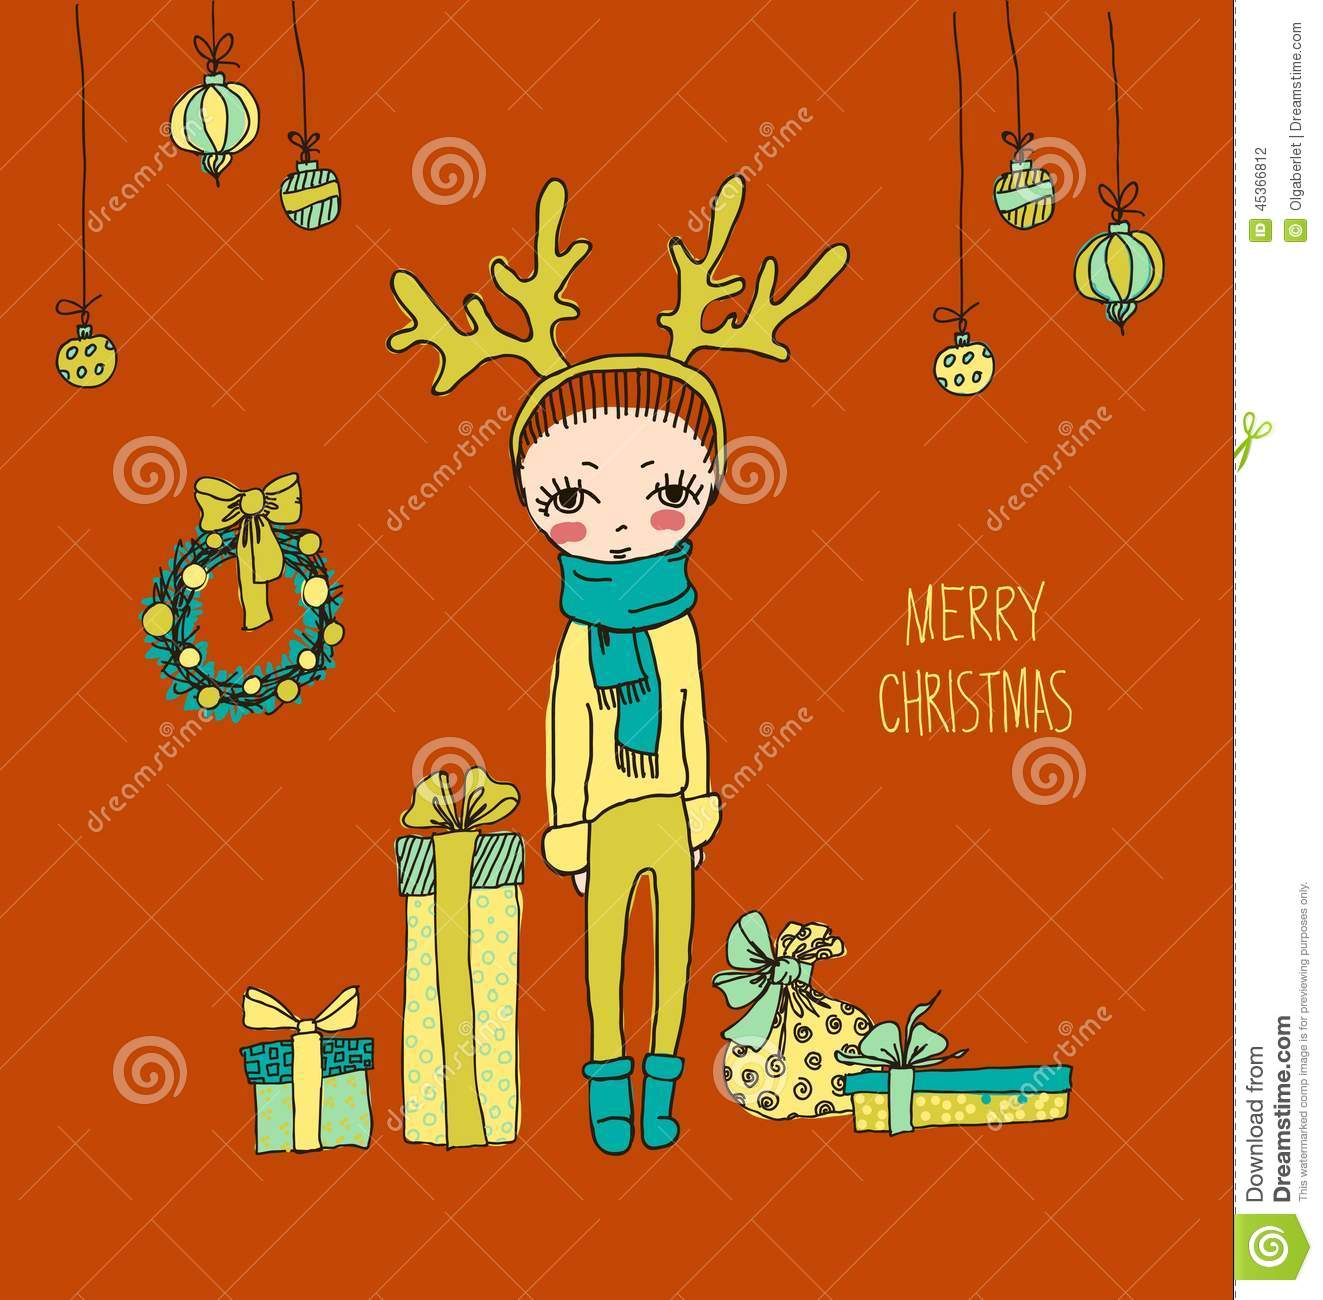 a7559c7d63628 Cute Christmas card in vector. Bright holiday background with small funny  angel in New Year toys in cartoon style. More similar stock illustrations